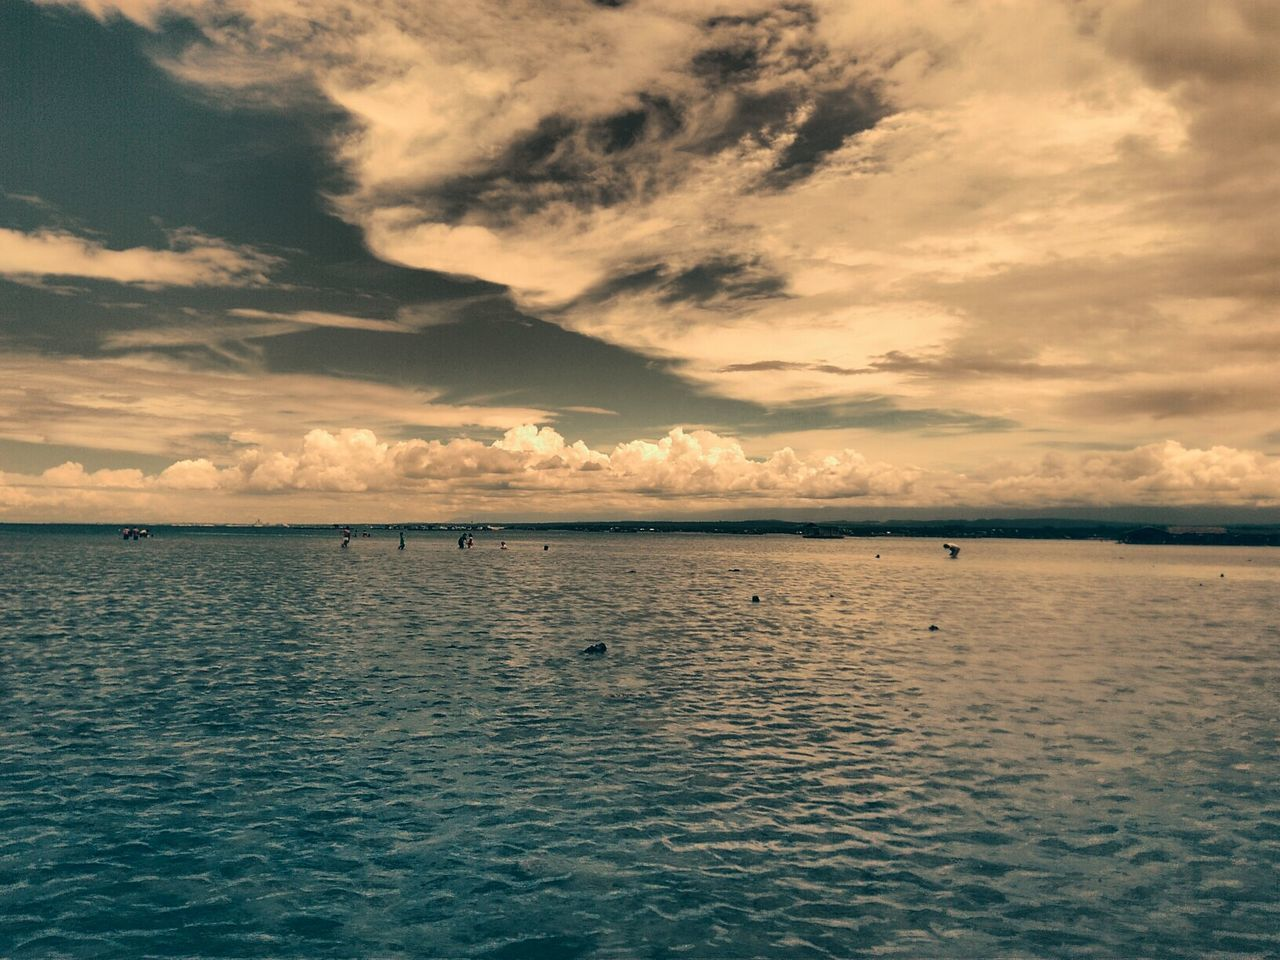 tranquility, sky, beauty in nature, scenics, tranquil scene, water, sunset, cloud - sky, nature, no people, sea, waterfront, reflection, idyllic, outdoors, rippled, day, horizon over water